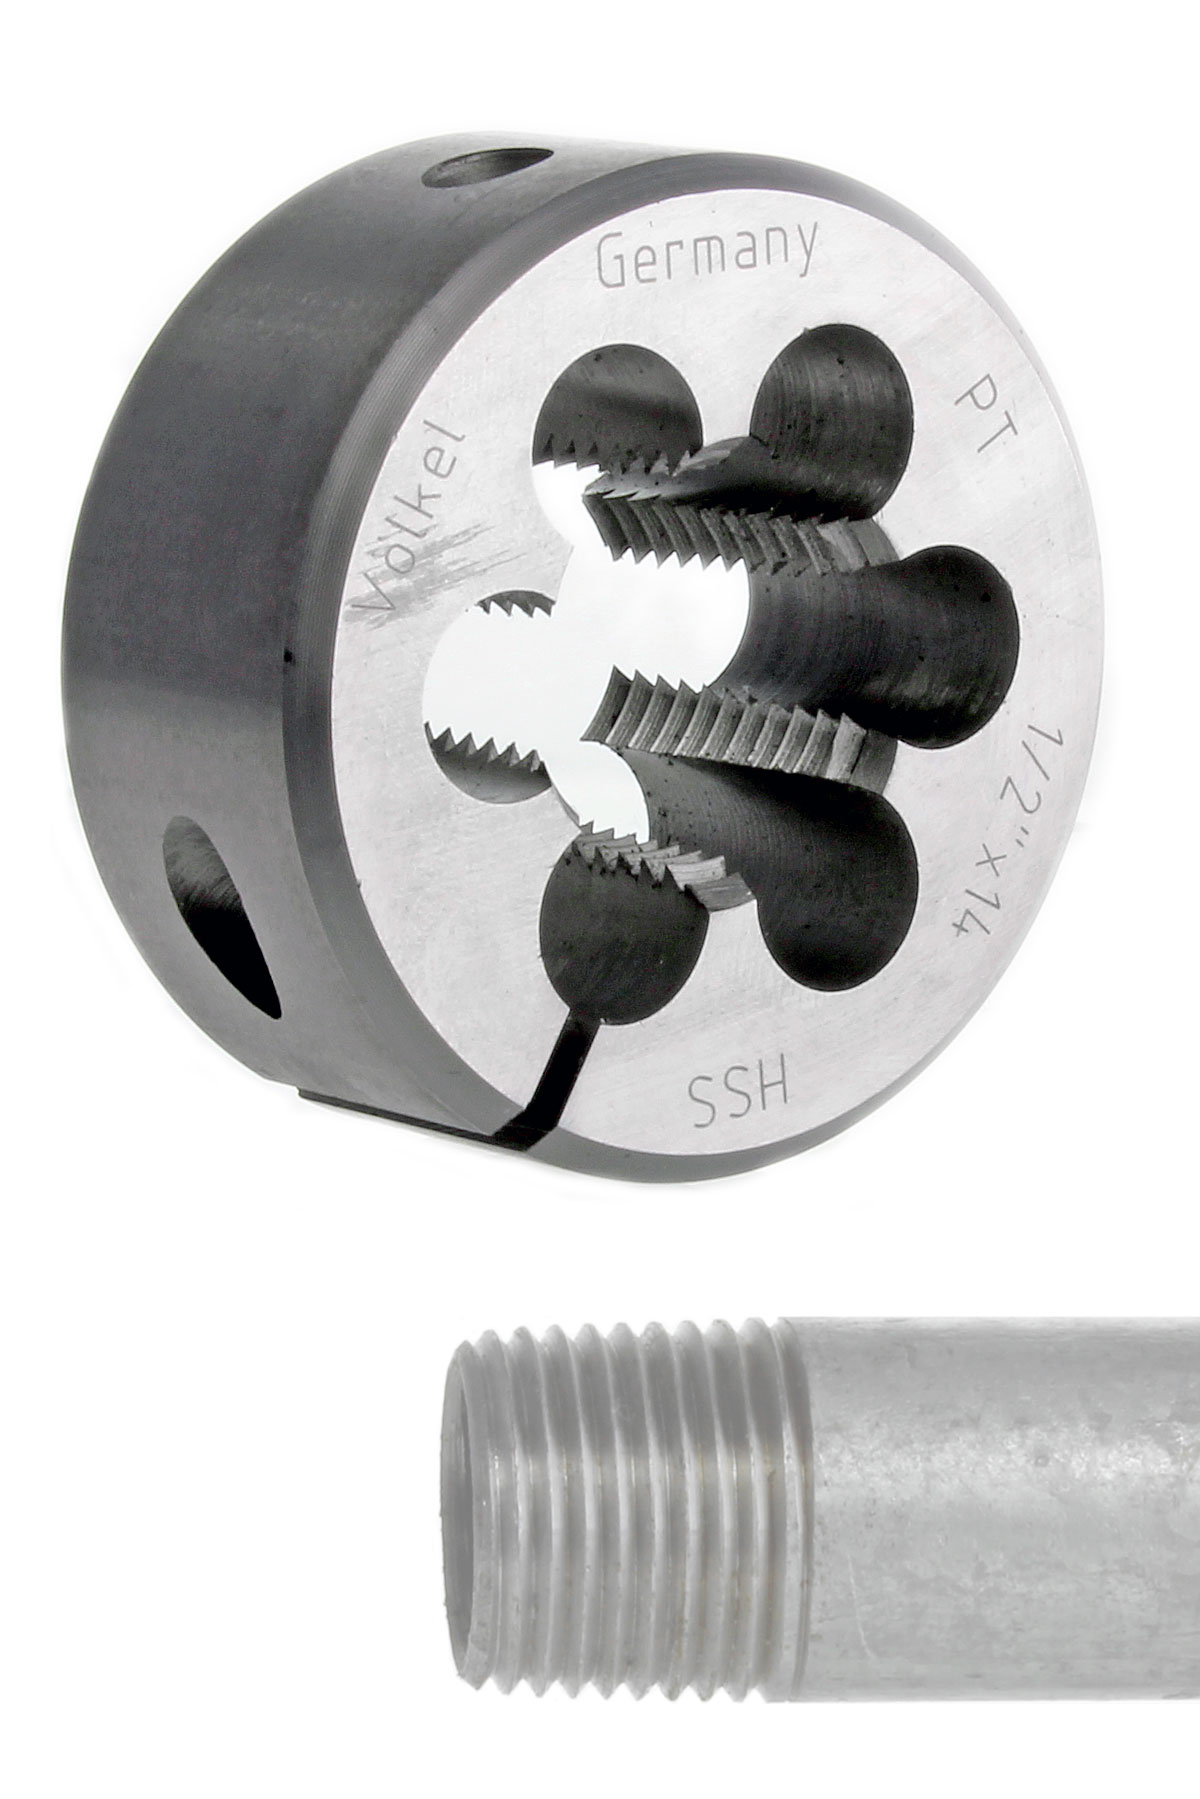 M20x2.5mm Chrome-Silicon Alloy Steel Round Die Dies Tapping Finish Tools